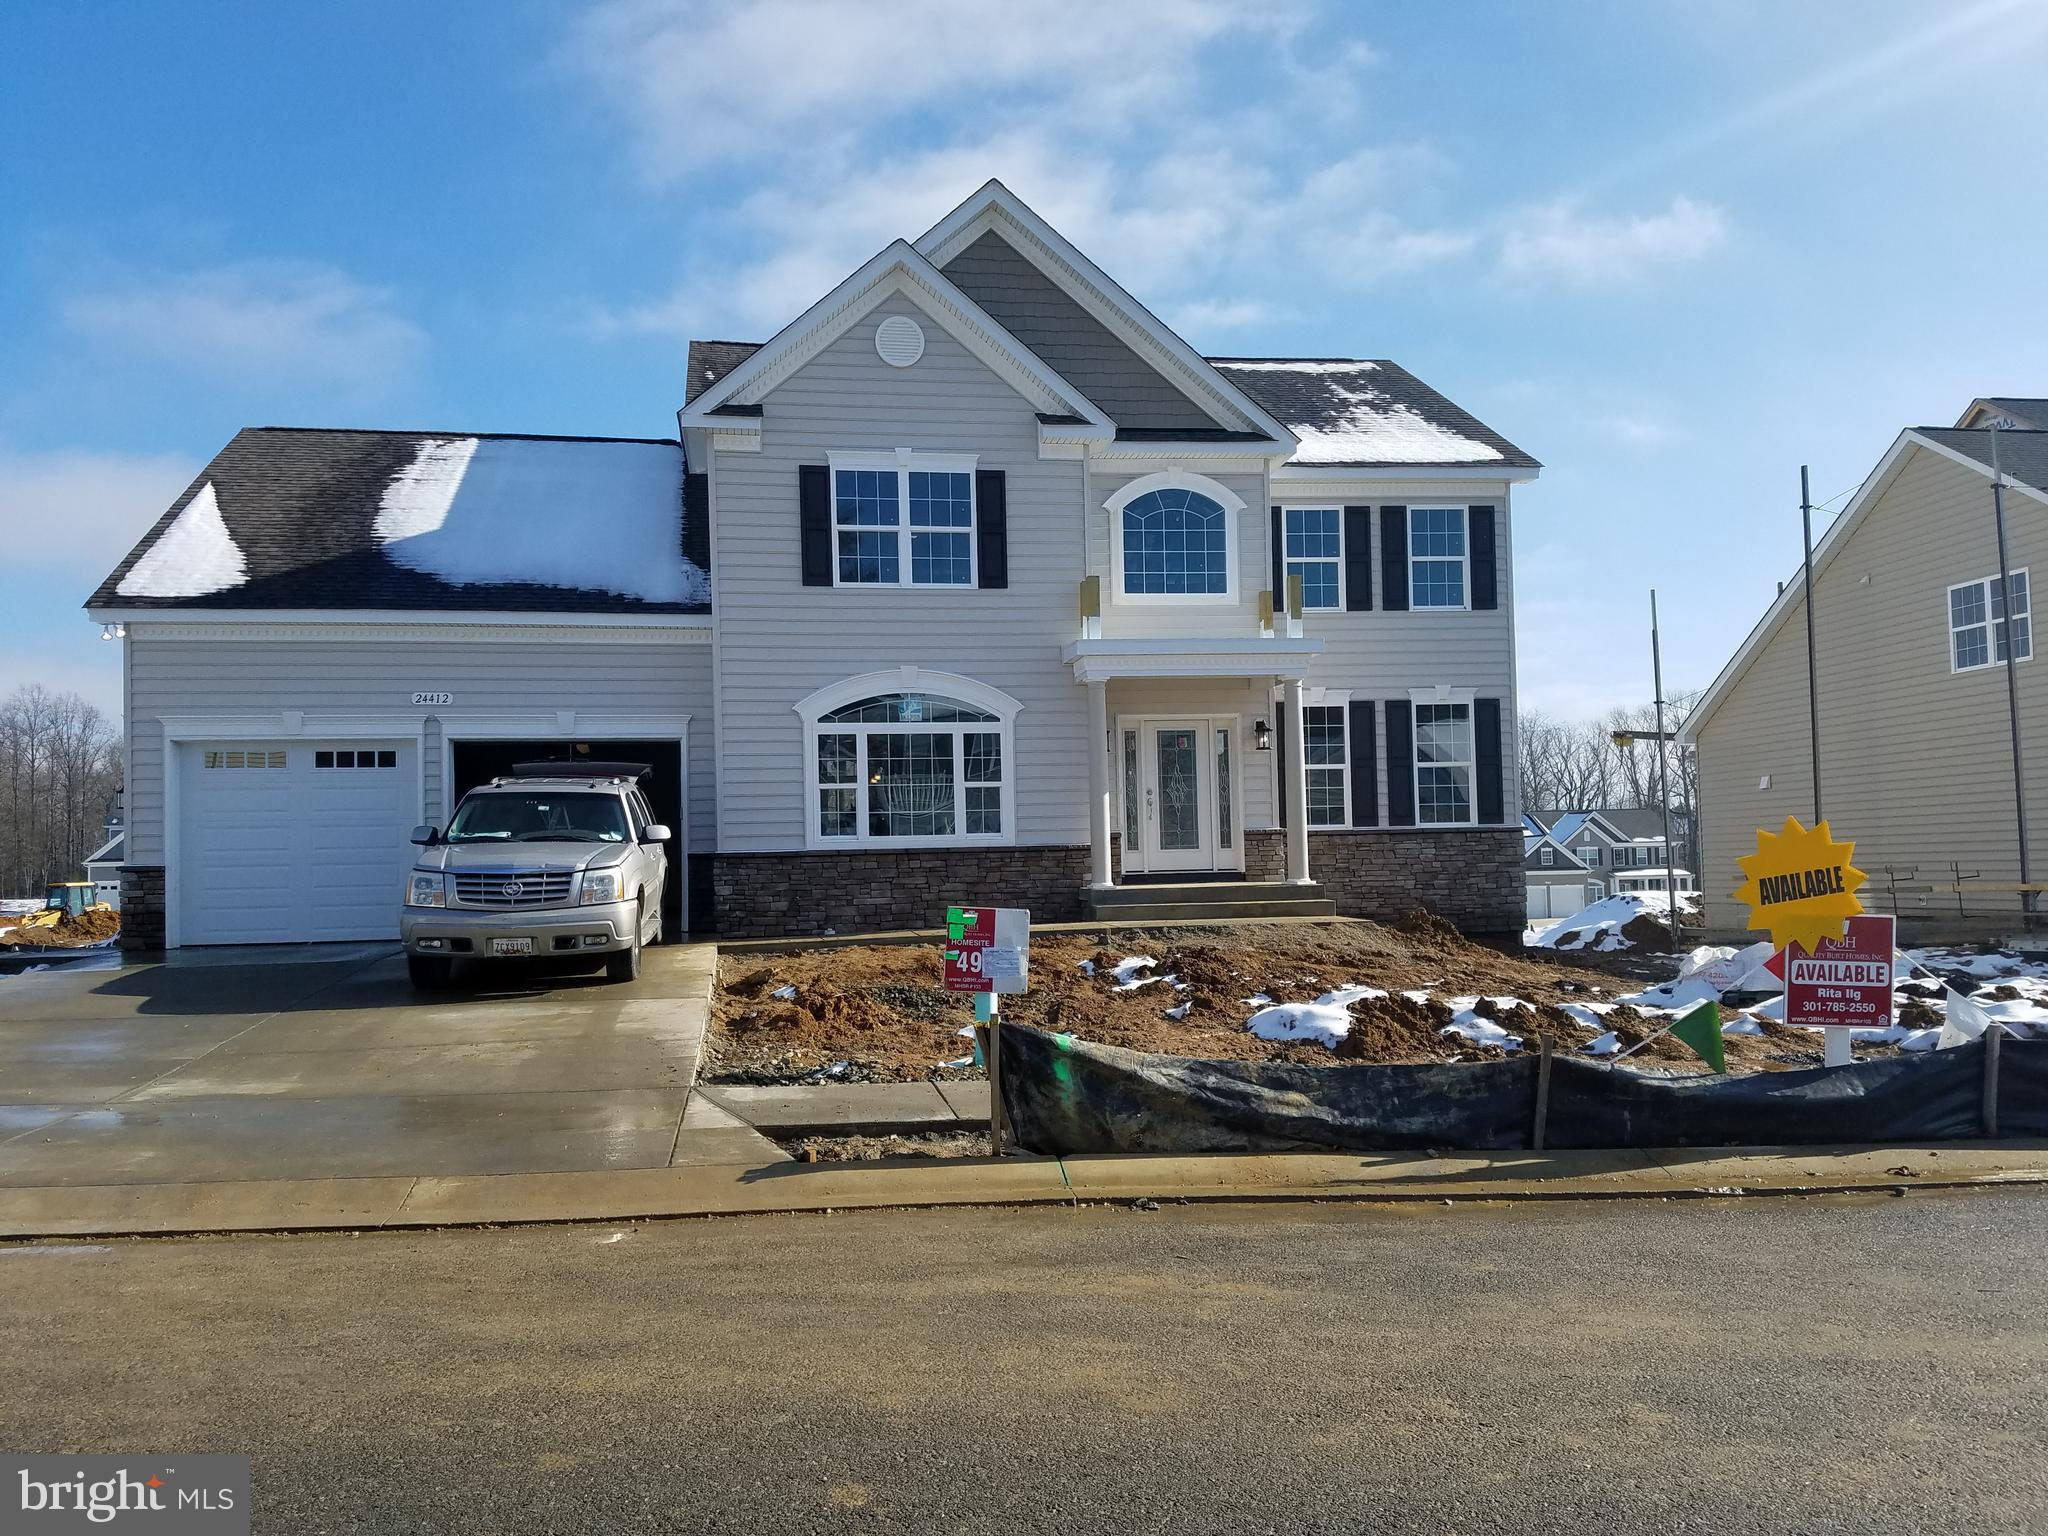 24412 FWD DRIVE, HOLLYWOOD, MD 20636